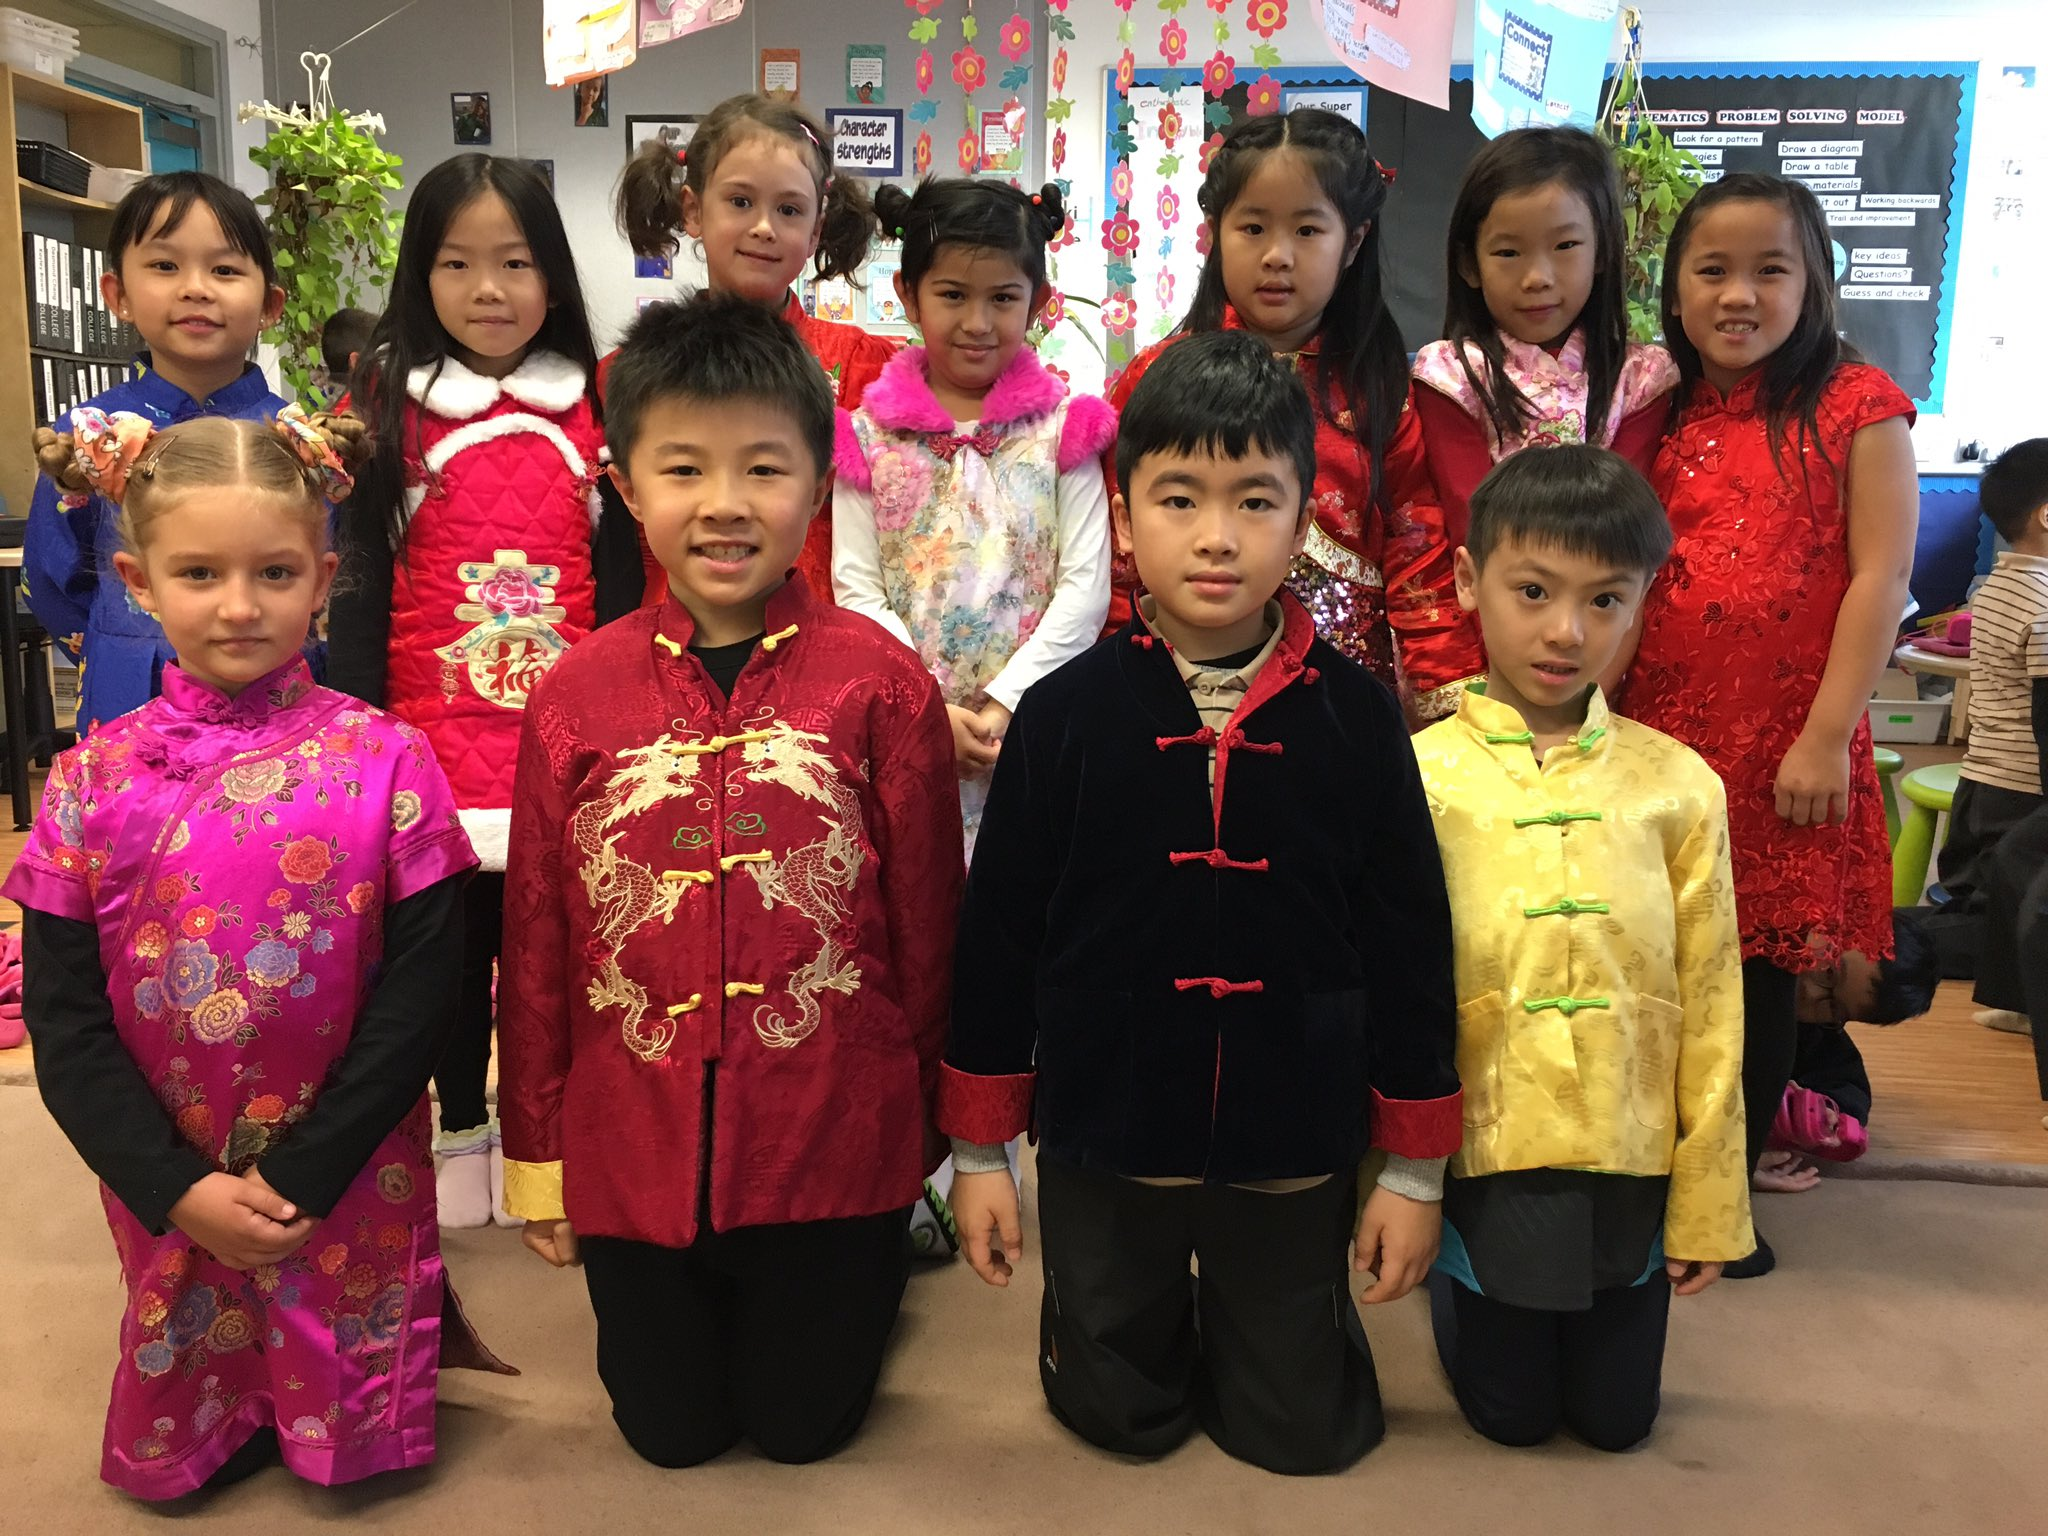 @RESVTlibrary here are students in their CNY costumes. #rchkpyp #awesome3LT https://t.co/IrLf63fNtm